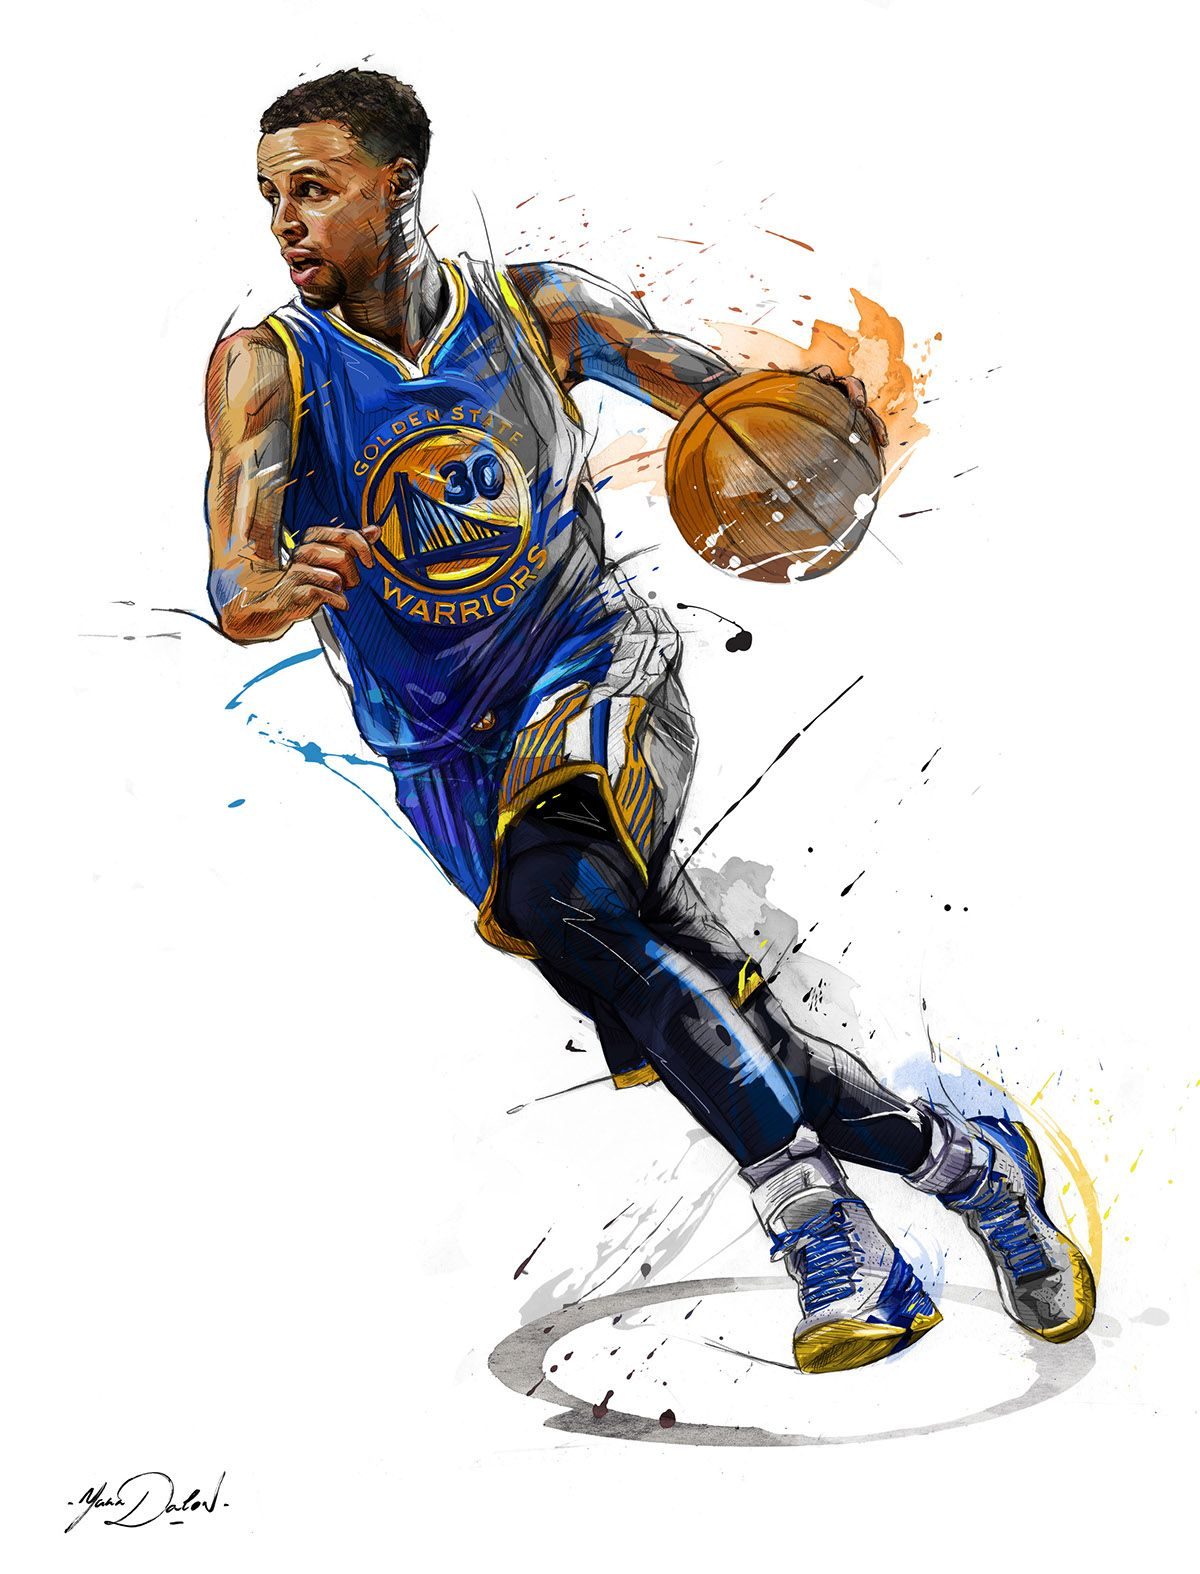 6825097b11b2 My work of painting and illustrations for the brand ENTERBAY and the NBA.